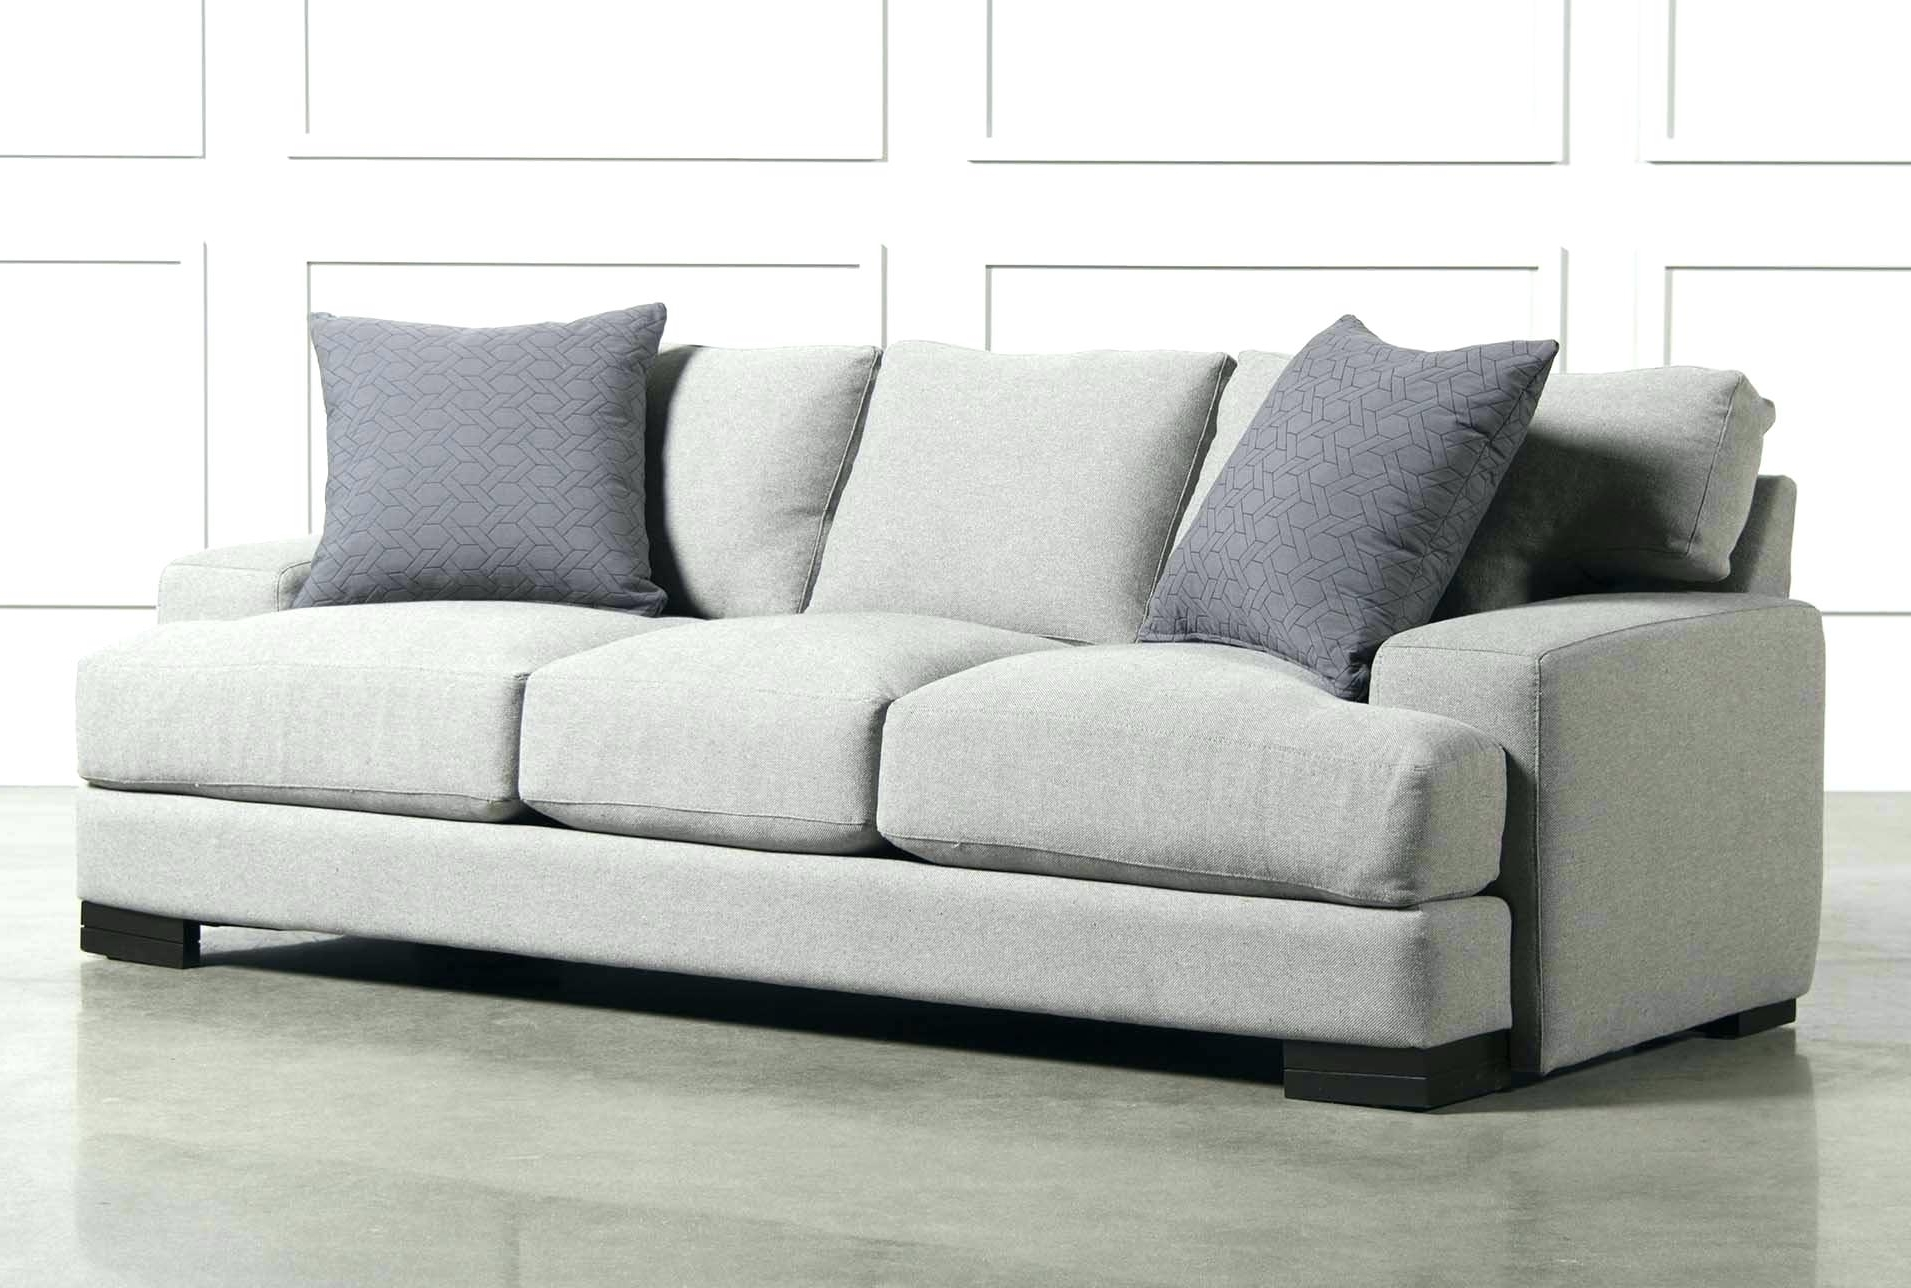 Closeout Sofas With Newest Couches On Clearance Sadining Sa Leather Closeout Sofas Calgary (View 4 of 15)